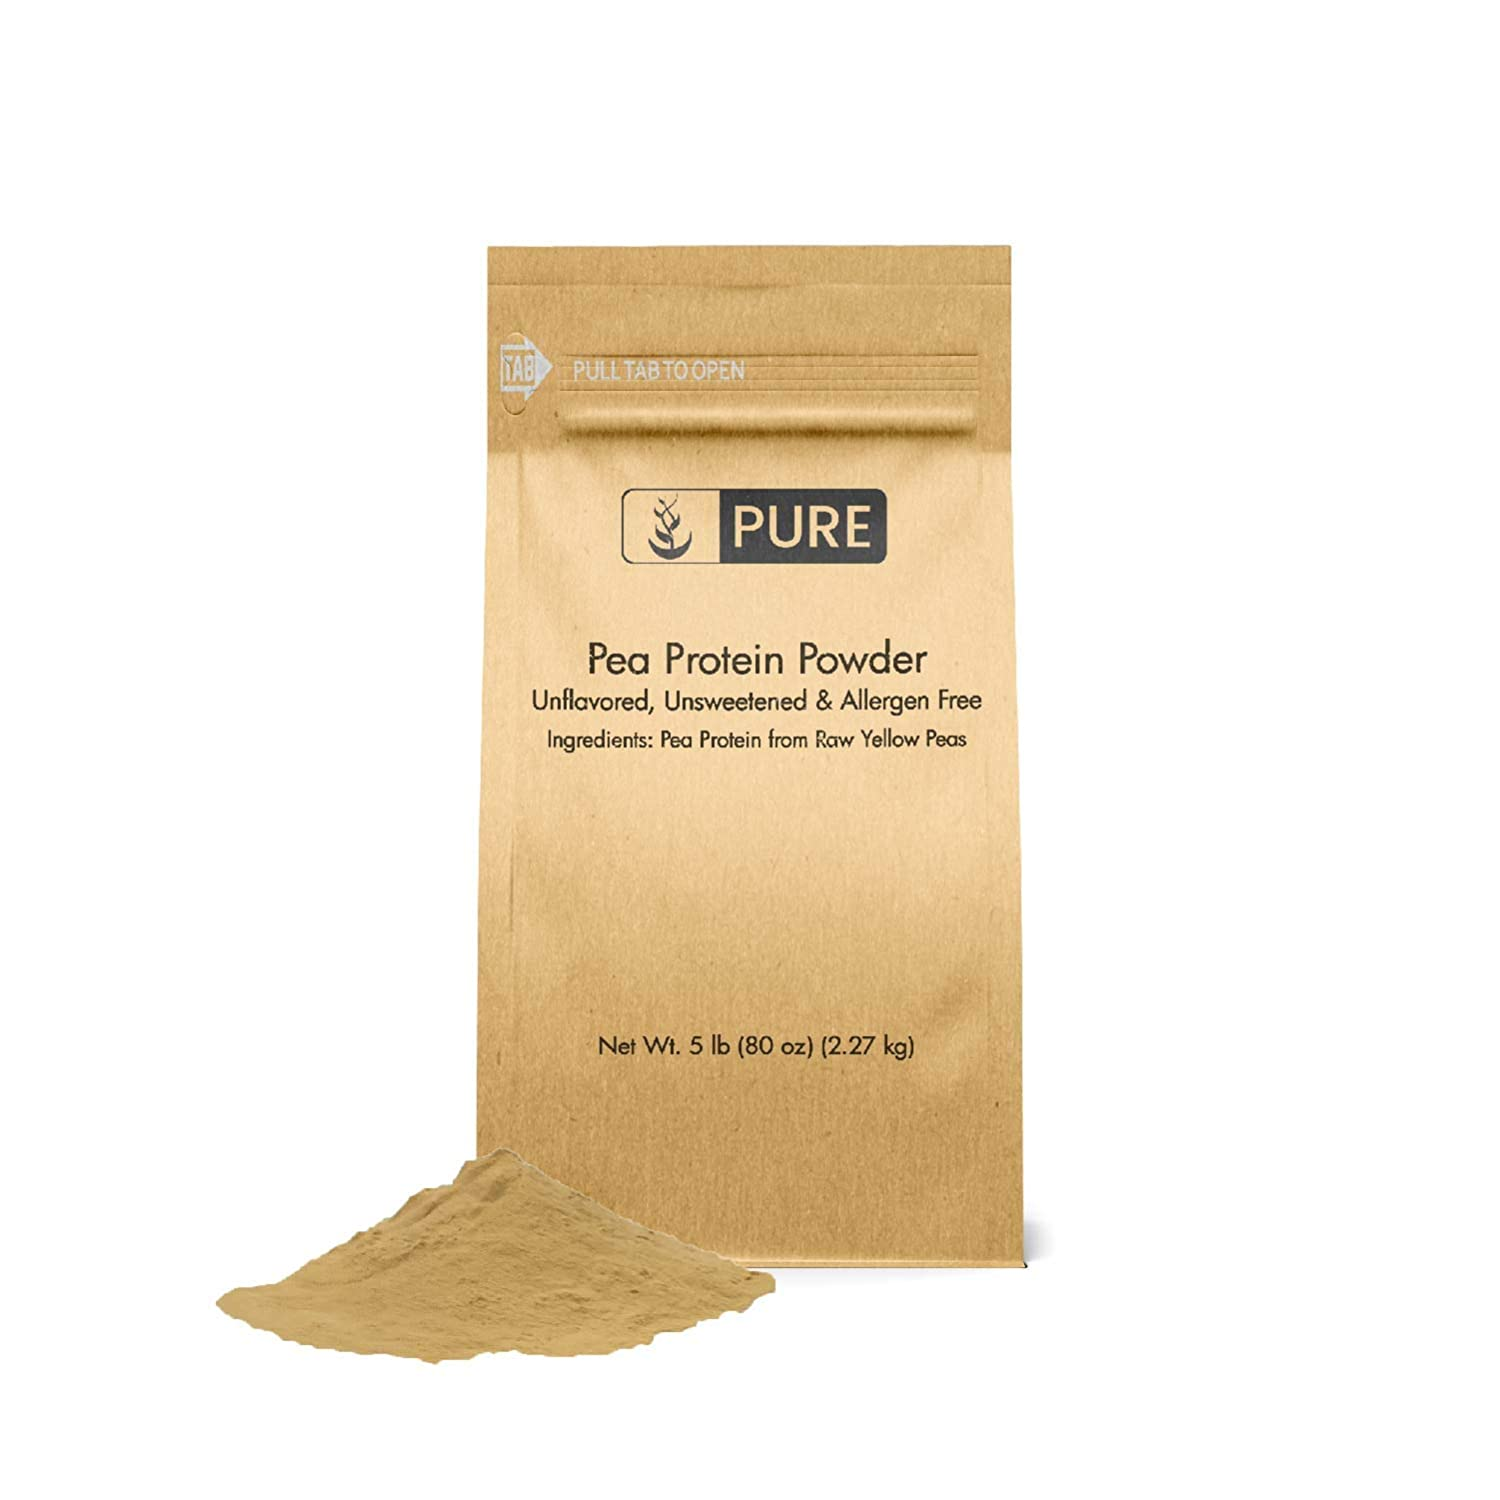 Pea Protein Powder 5 lbs by Pure Organic Ingredients, Eco-Friendly Packaging, High Quality, All-Natural, Allergen-Free